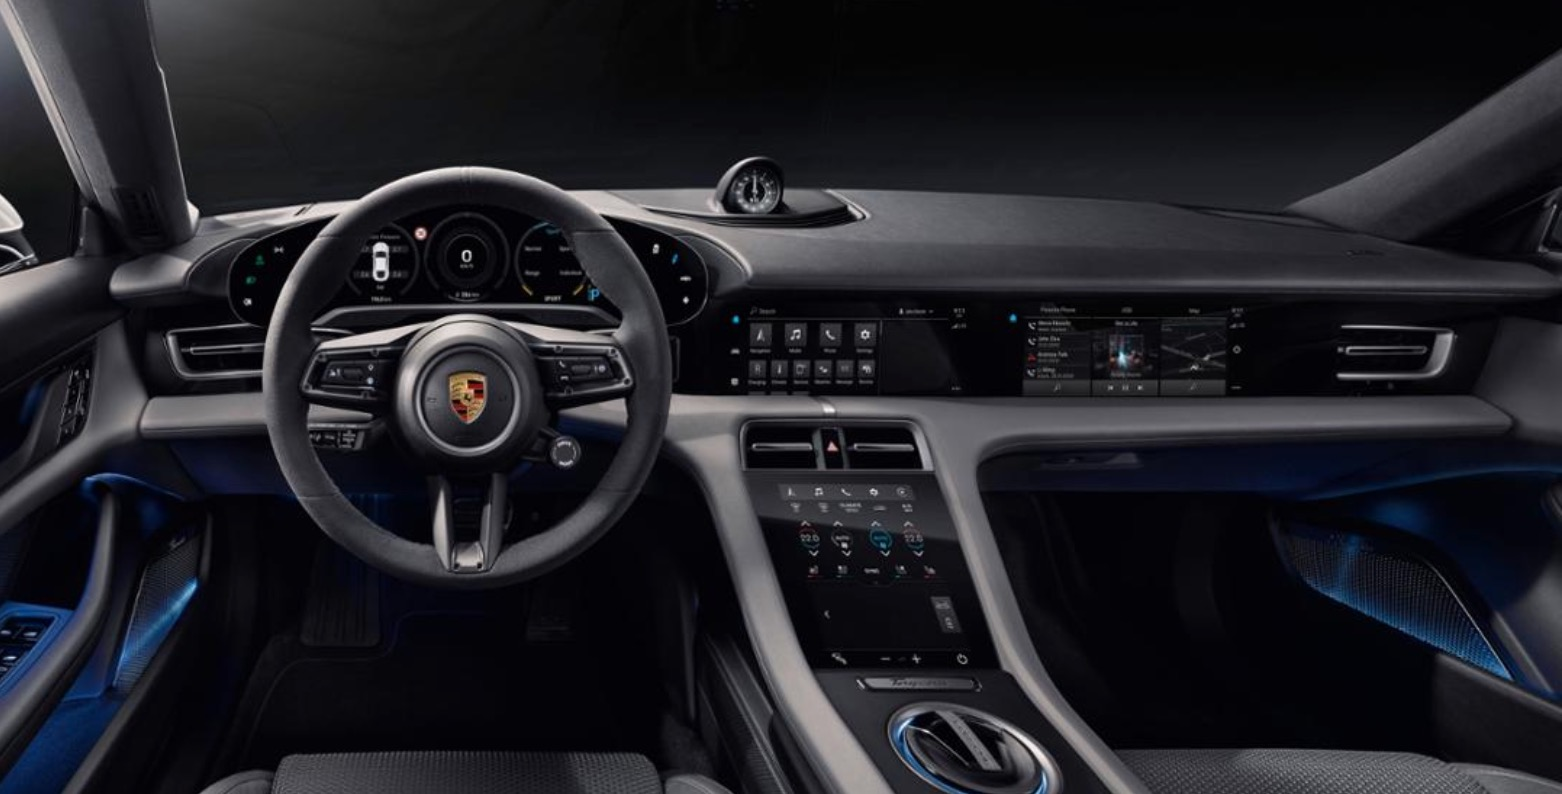 Porsche unveils the interior of Taycan electric car